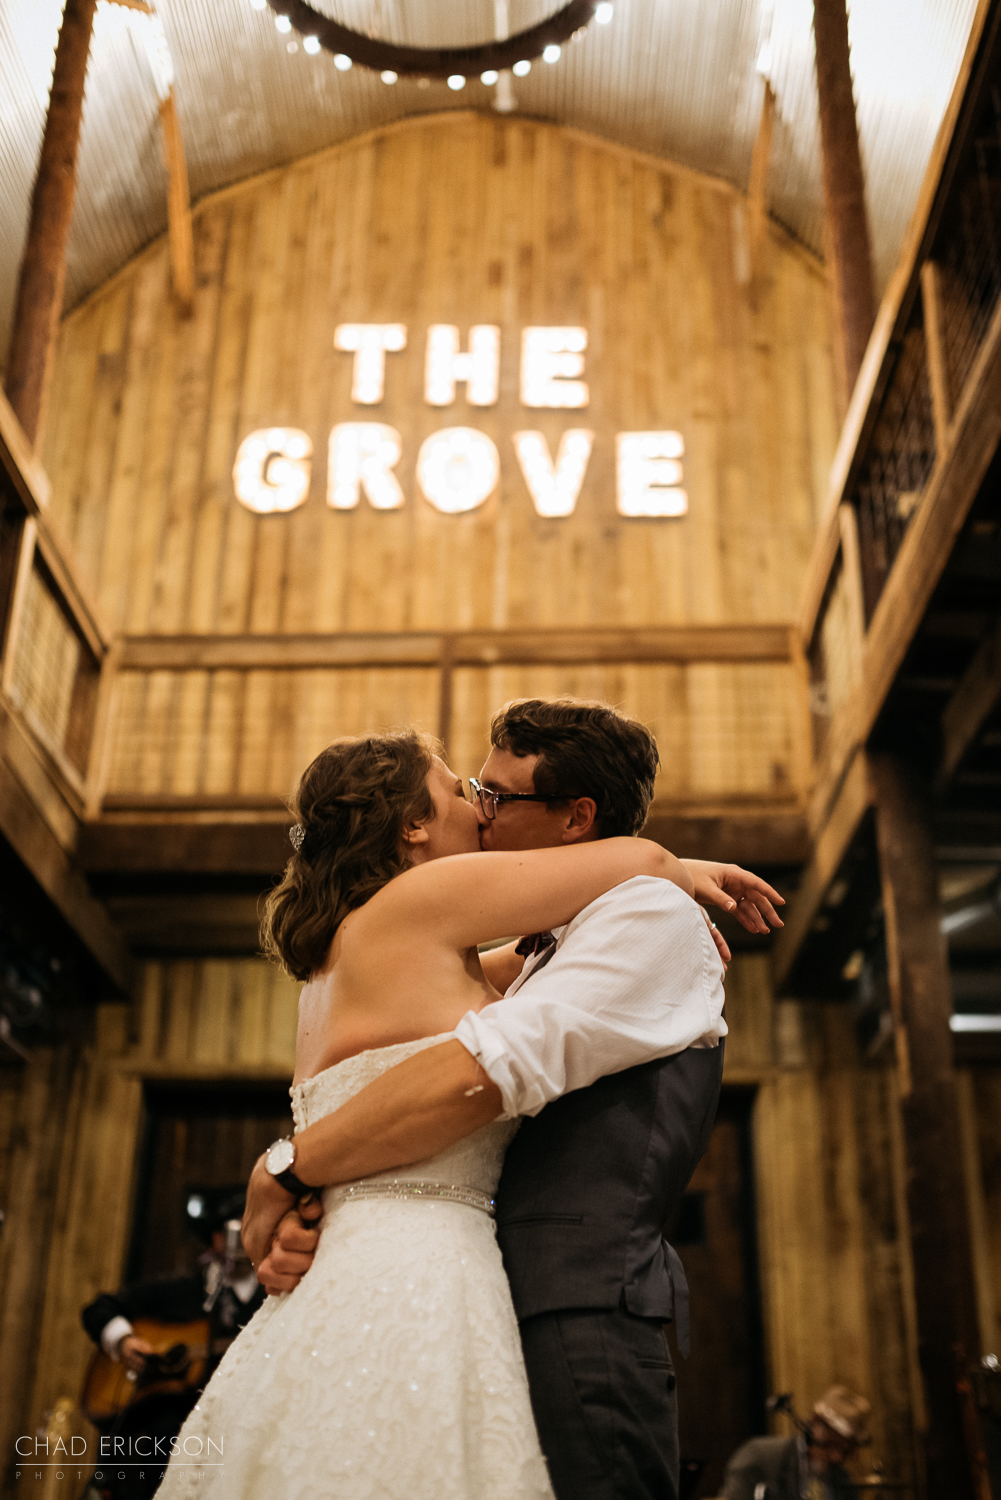 Bride and groom dancing under The Grove